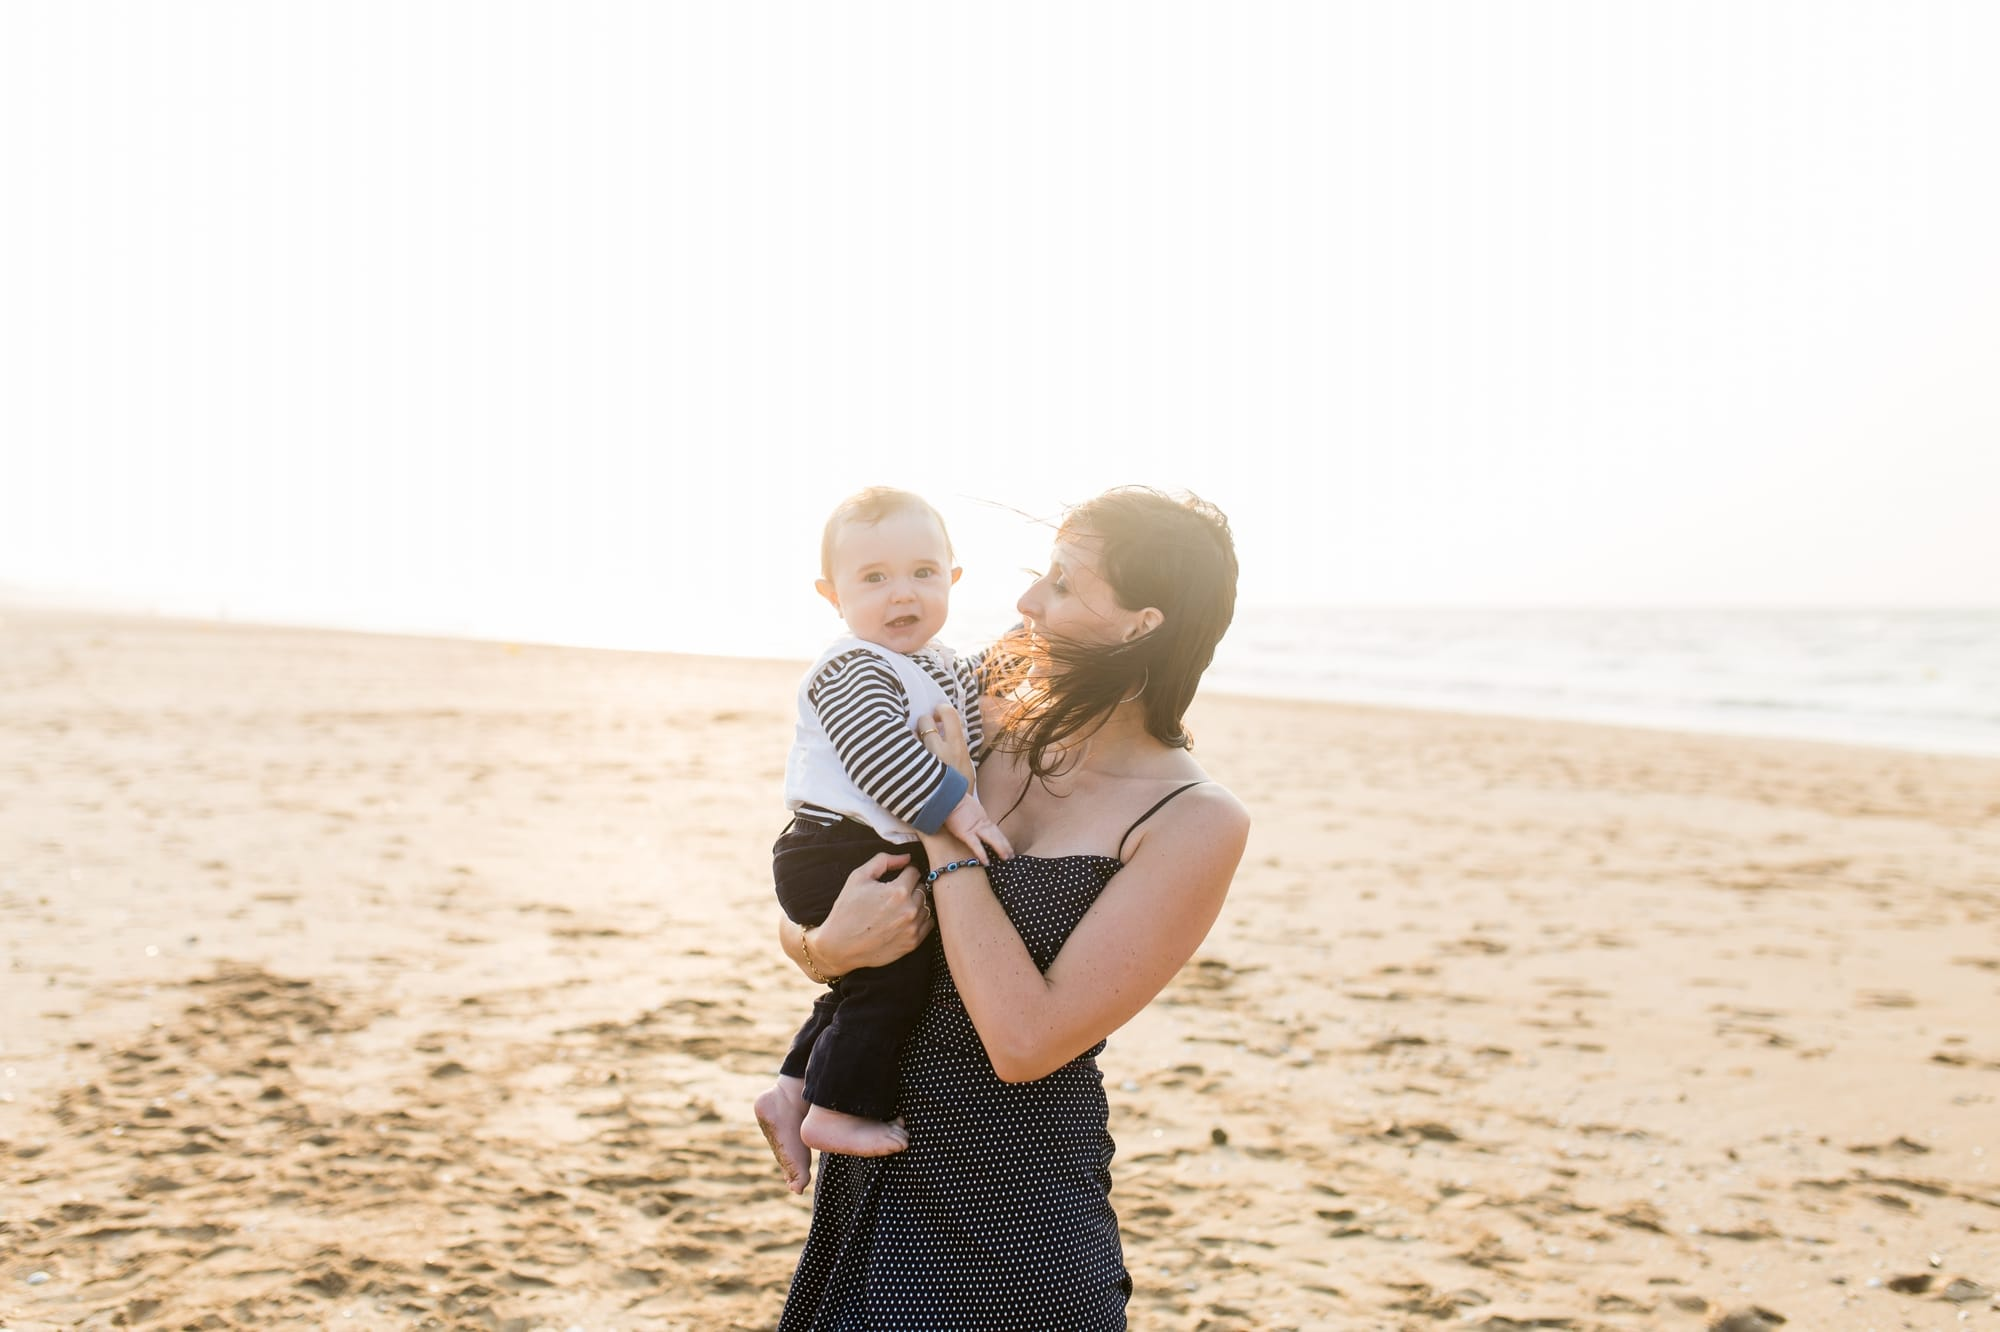 séance famille cabourg basse normandie photographe shooting lifestyle-24